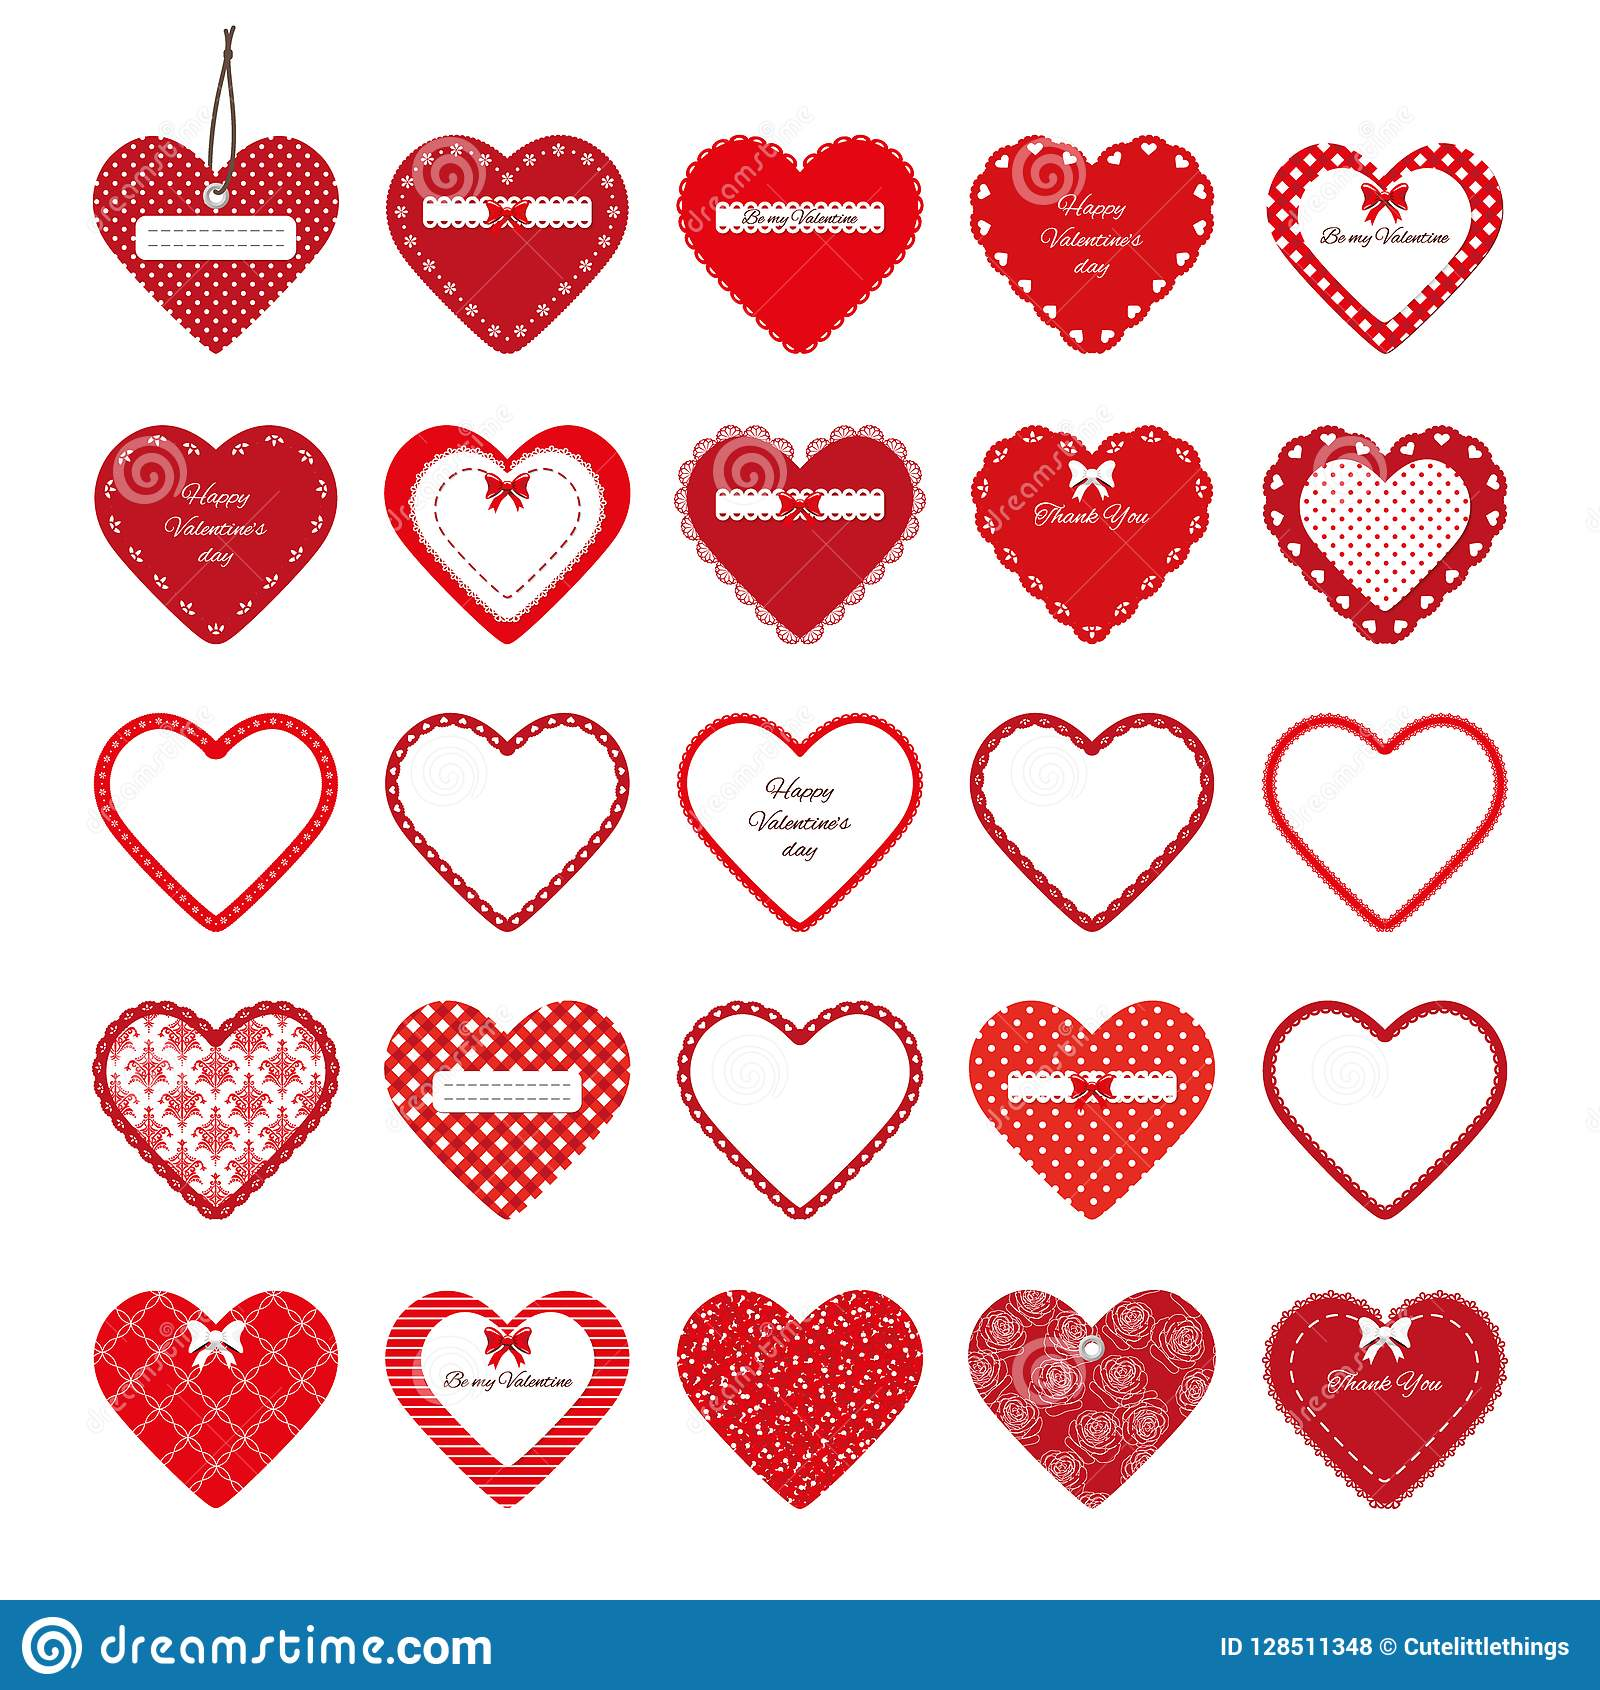 dcc60897105 Decorative Cut Out Hearts Set Isolated On White. Stock Illustration ...